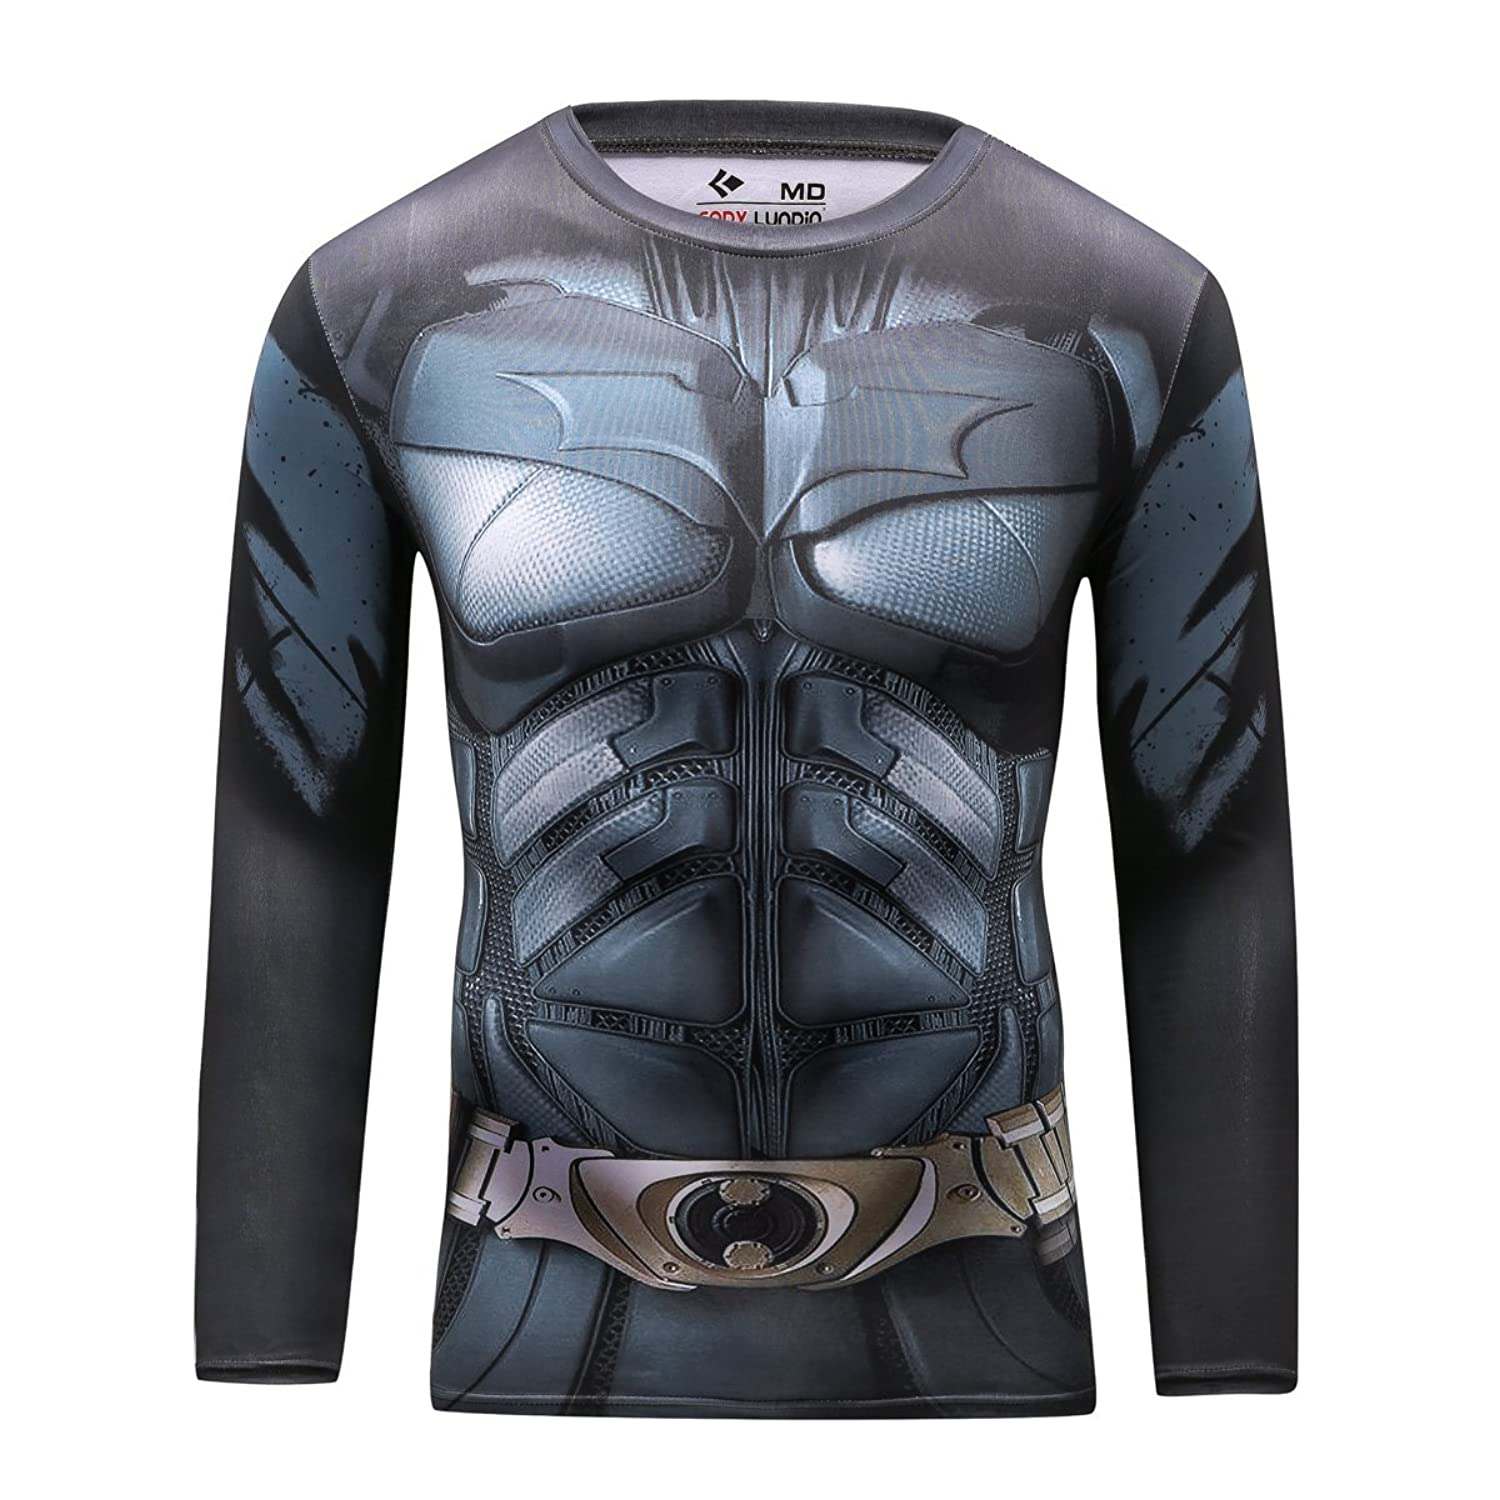 Image of Cody Lundin Men's Compression Rash Guard Bat Hero